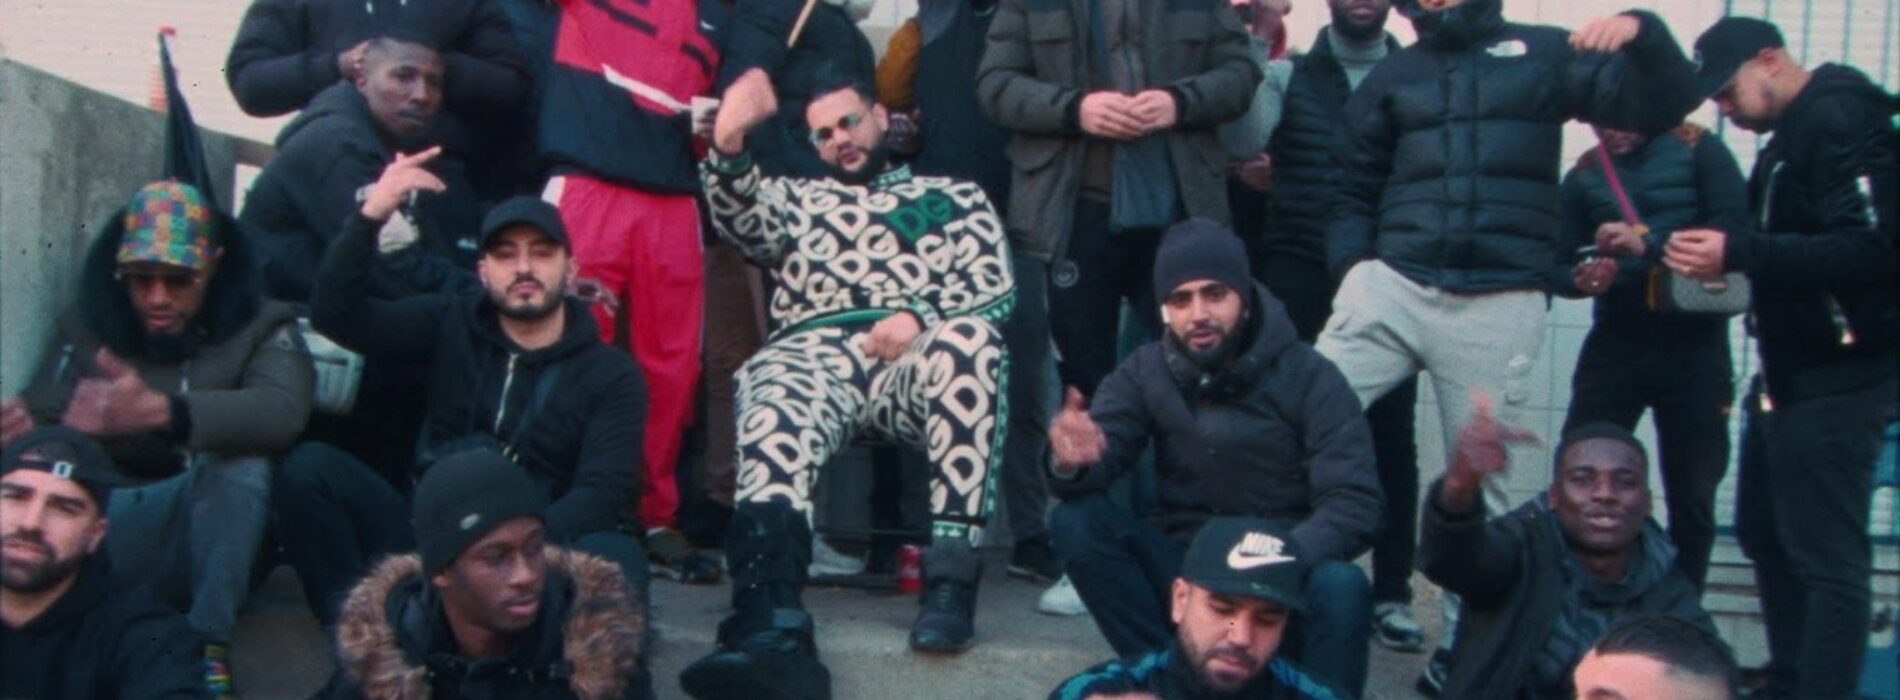 Sadek – Labess (Clip officiel) – Janvier 2021